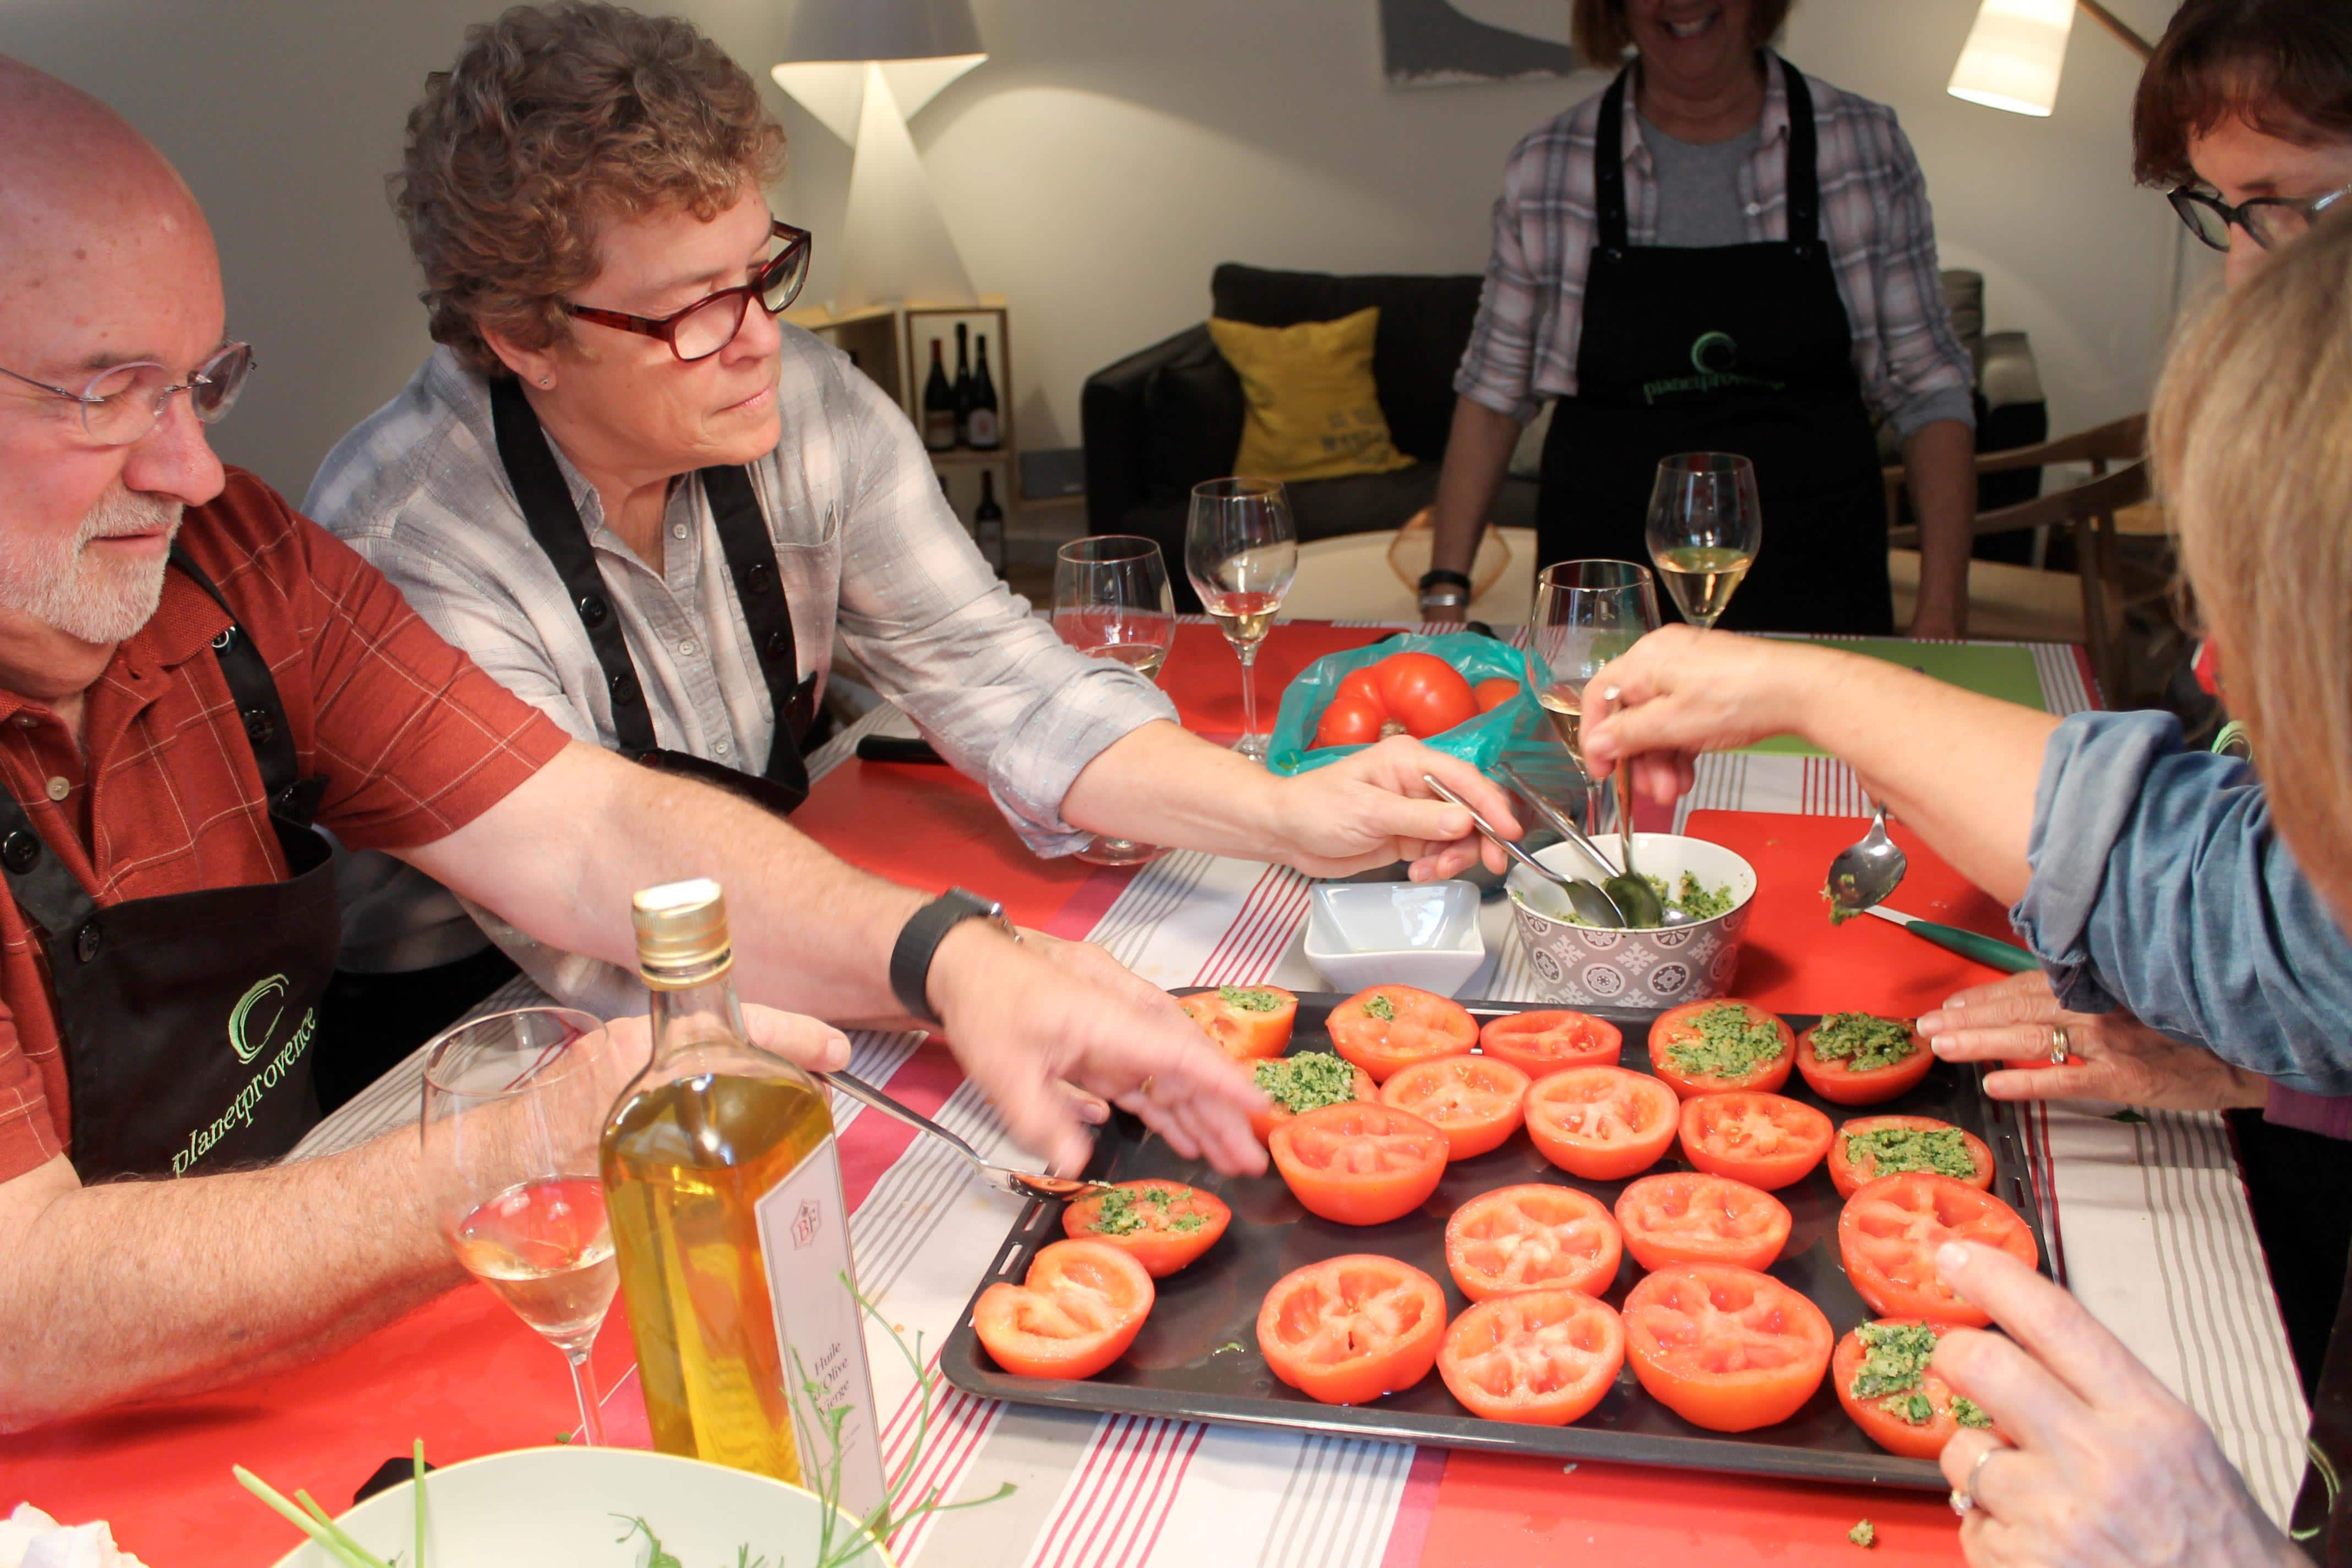 Wine and cooking class, stuffed tomatoes